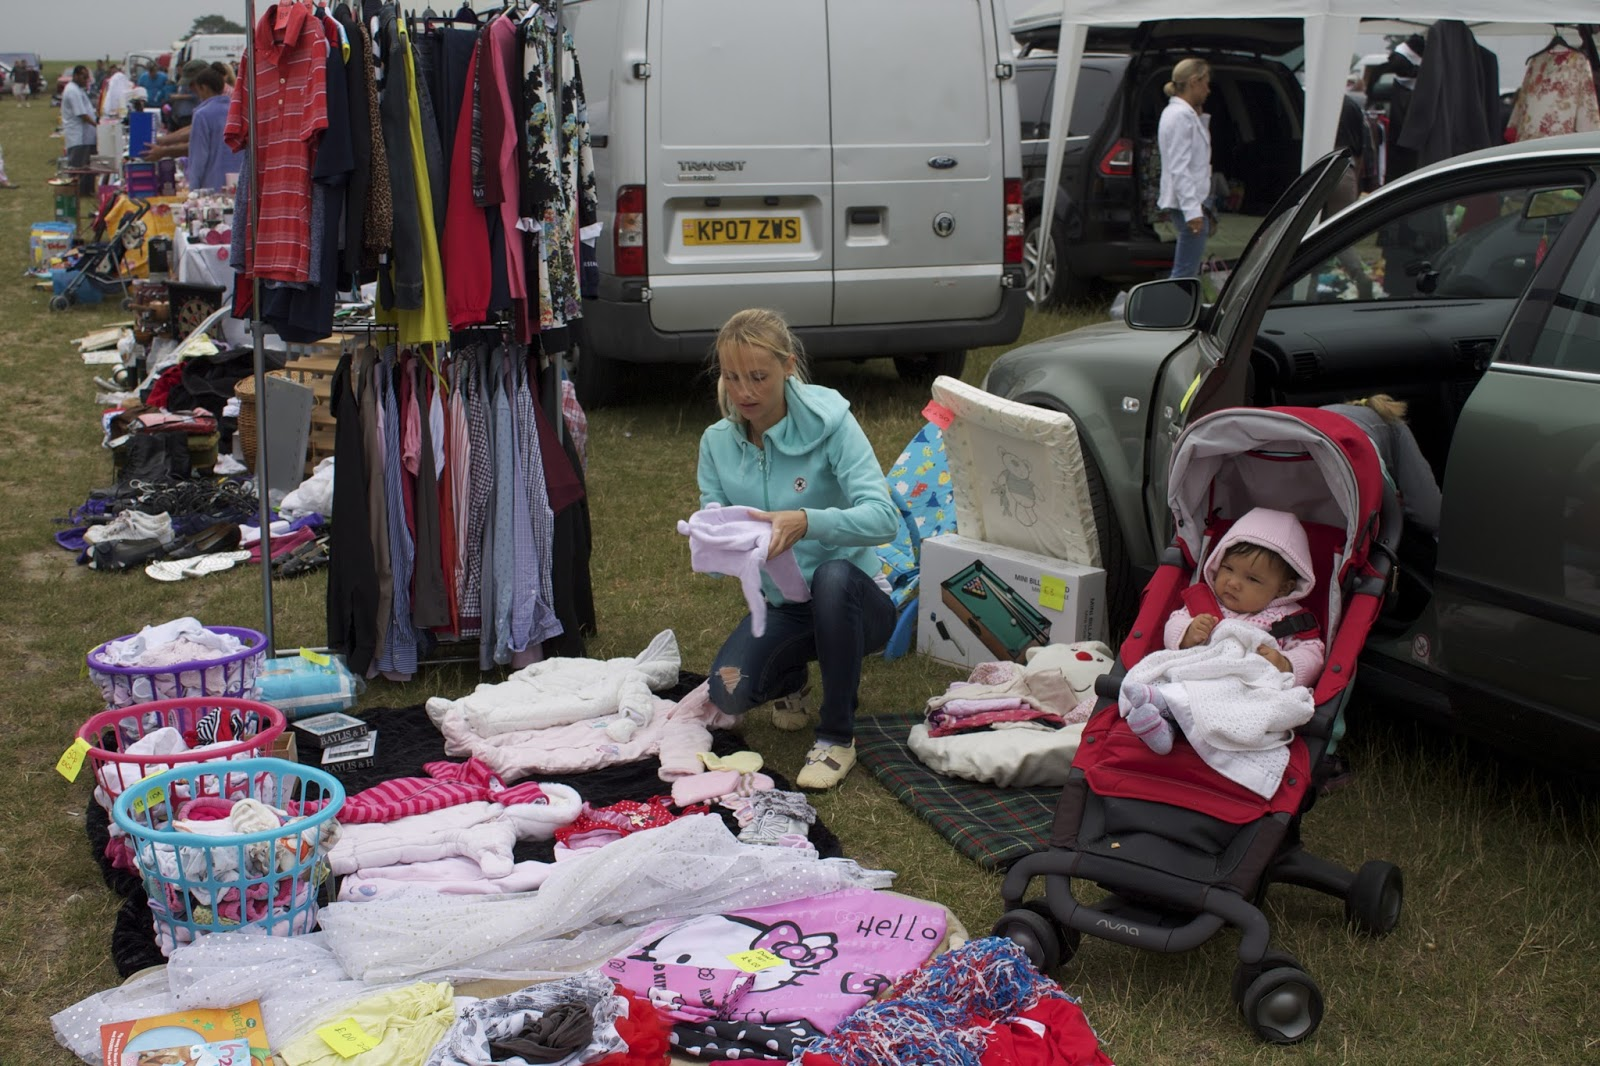 Dunton car boot sale